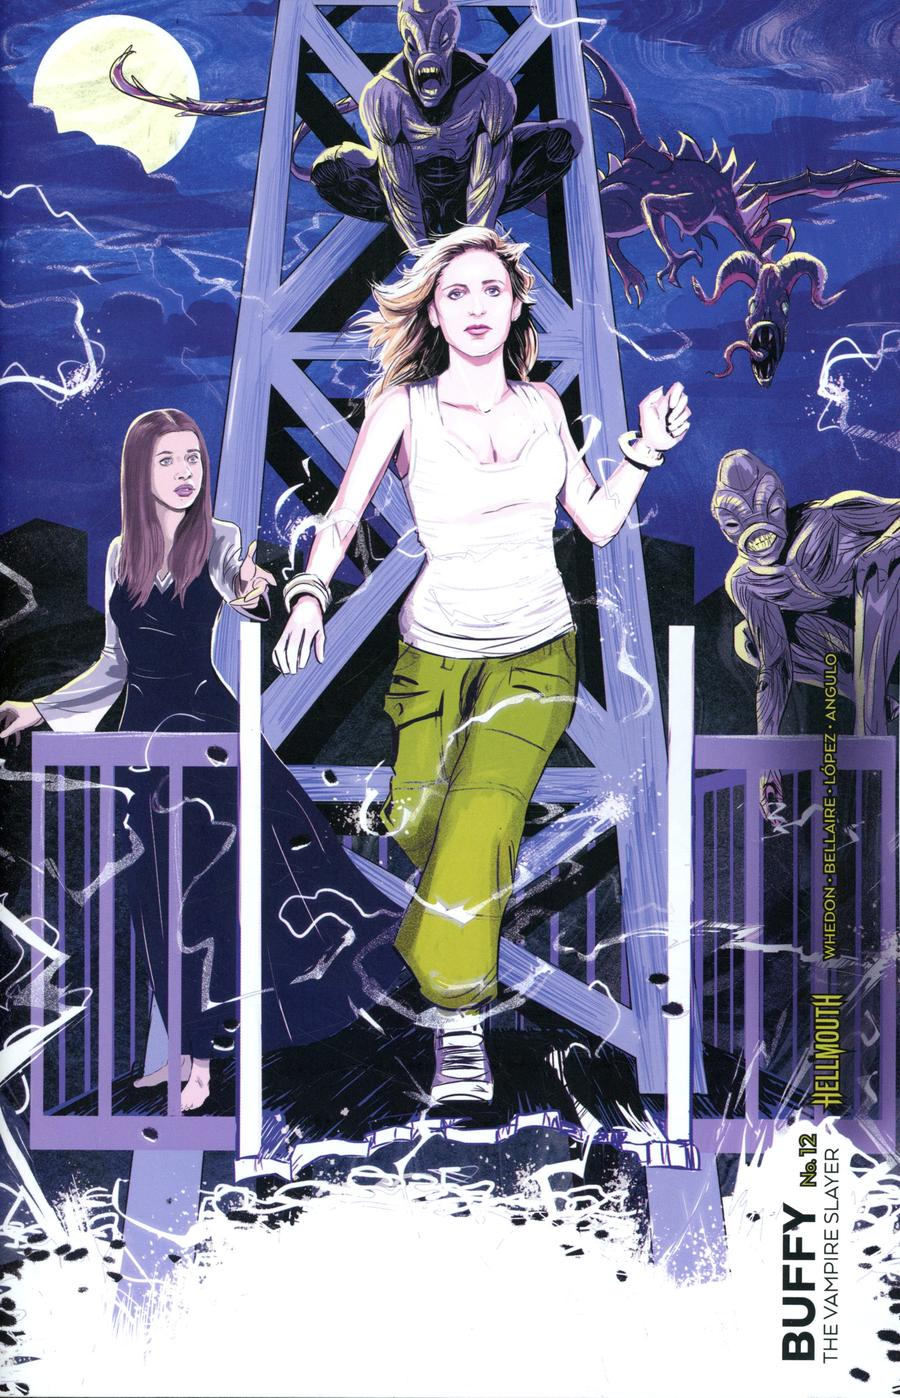 Buffy The Vampire Slayer Vol 2 #12 Cover D Variant Ryan Inzana Preorder Cover (Hellmouth Tie-In)